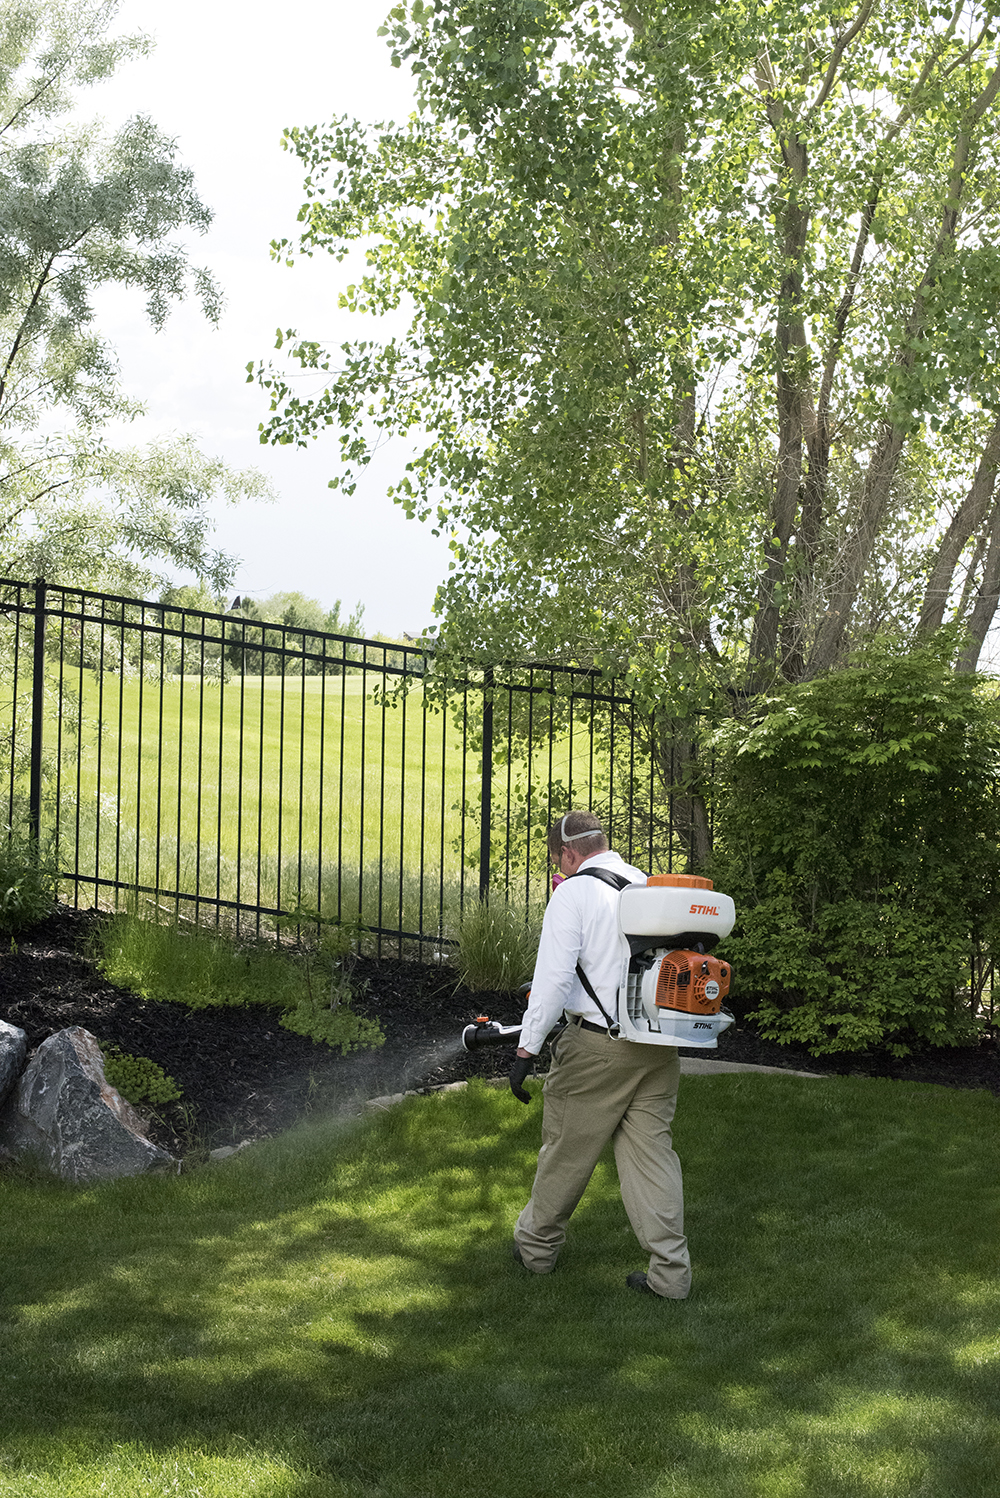 How We Keep Our Outdoor Areas Mosquito Free - roomfortuesday.com